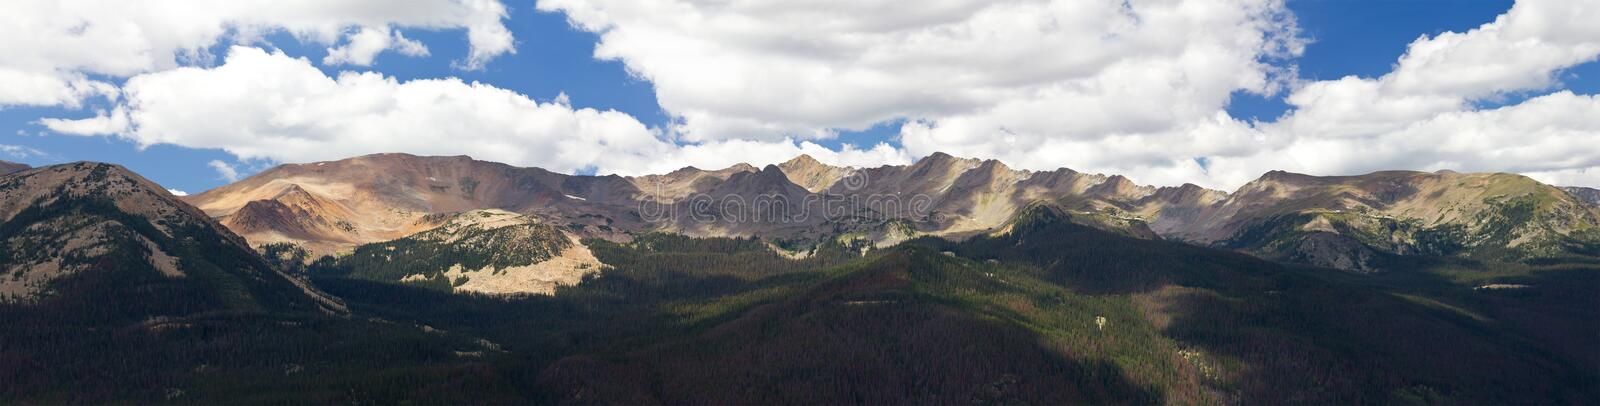 Panoramic Mountain Landscape in Colorado royalty free stock photography